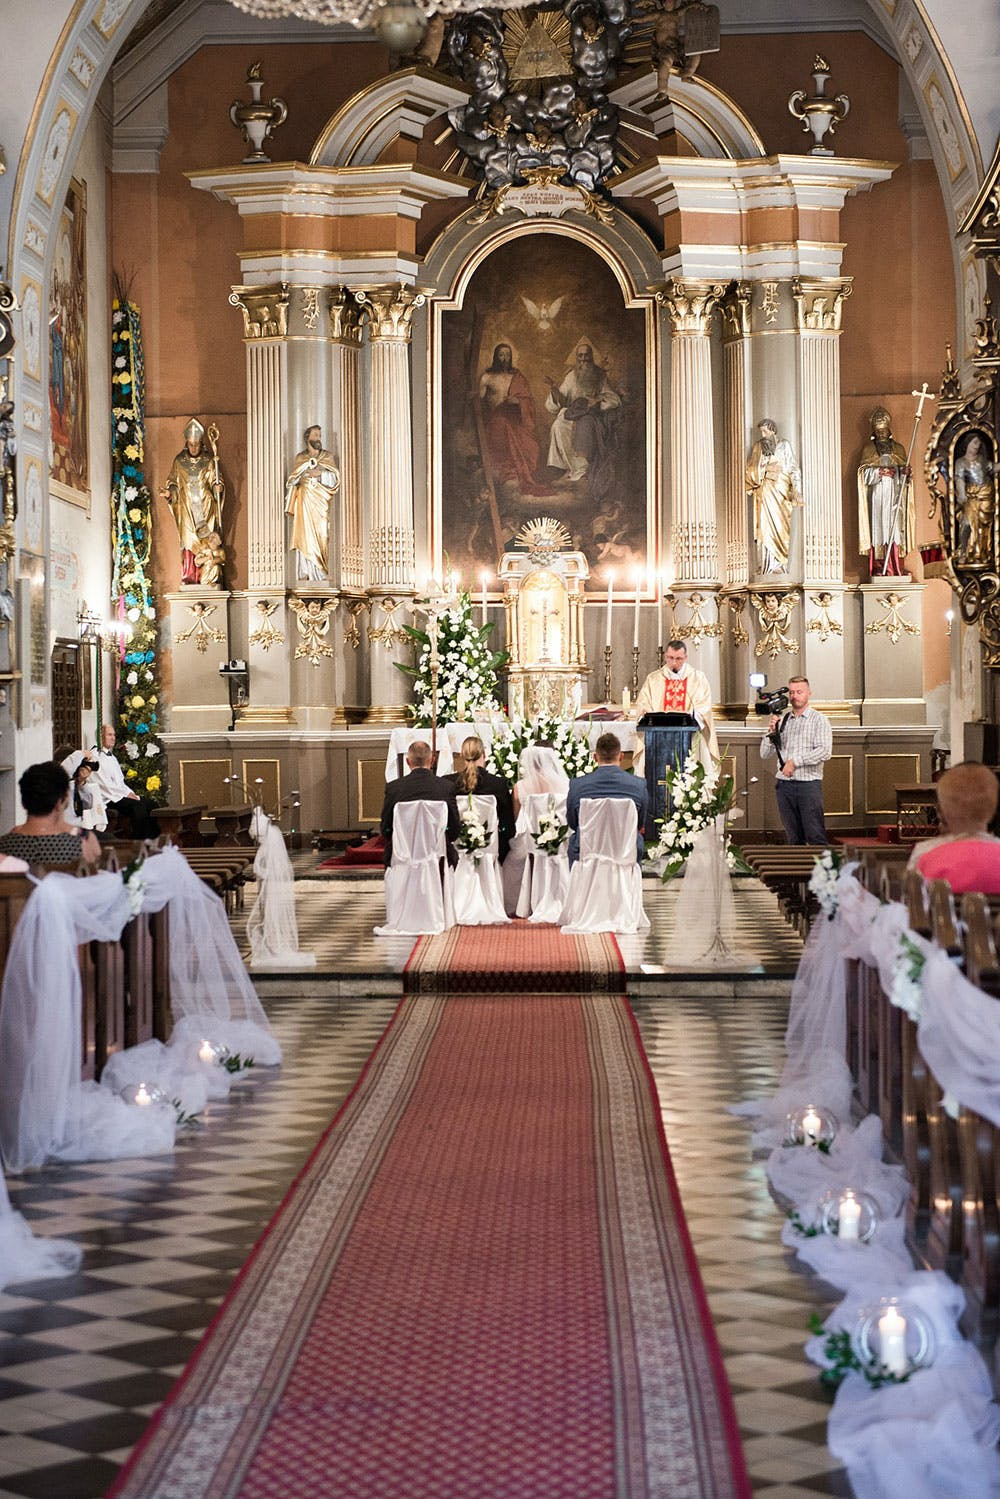 Church aisle decorated with white ribbon for wedding, guests and bride and groom sat for wedding ceremony